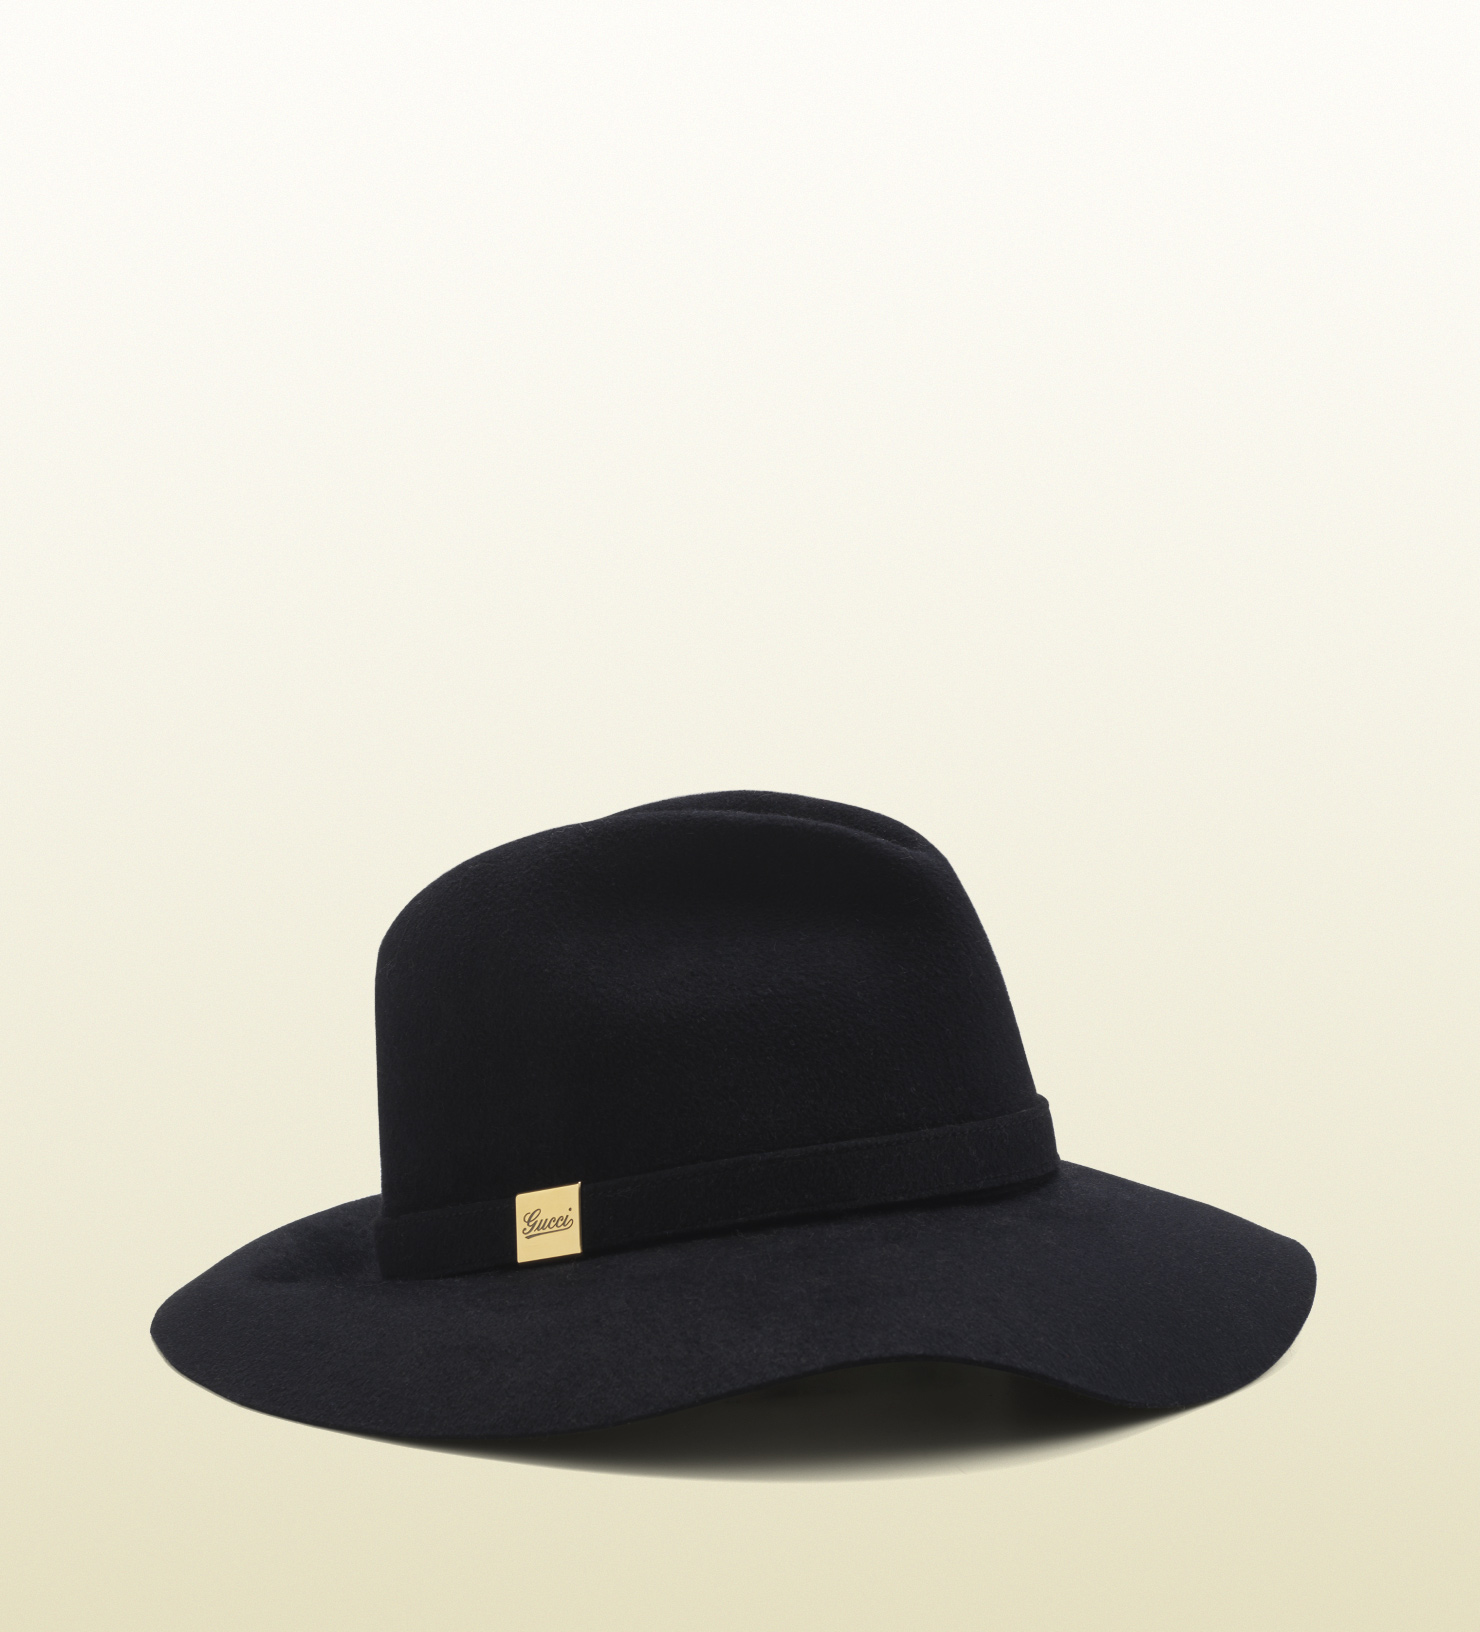 ba8e174c Gucci Trilby Hat with Engraved Gucci Script Logo in Black - Lyst